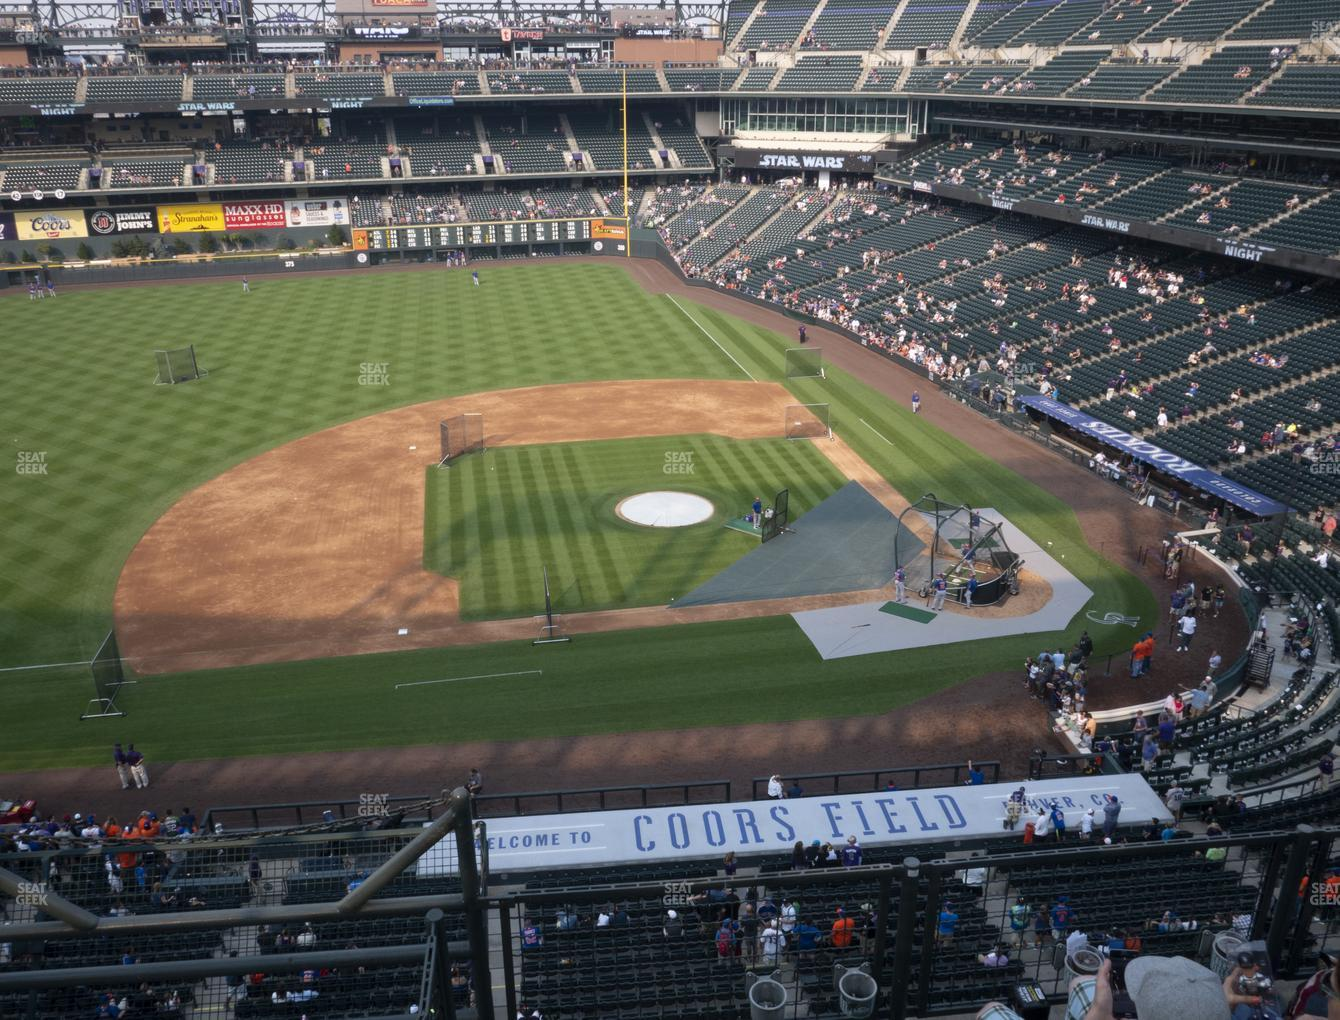 Colorado Rockies at Coors Field Lower 338 View